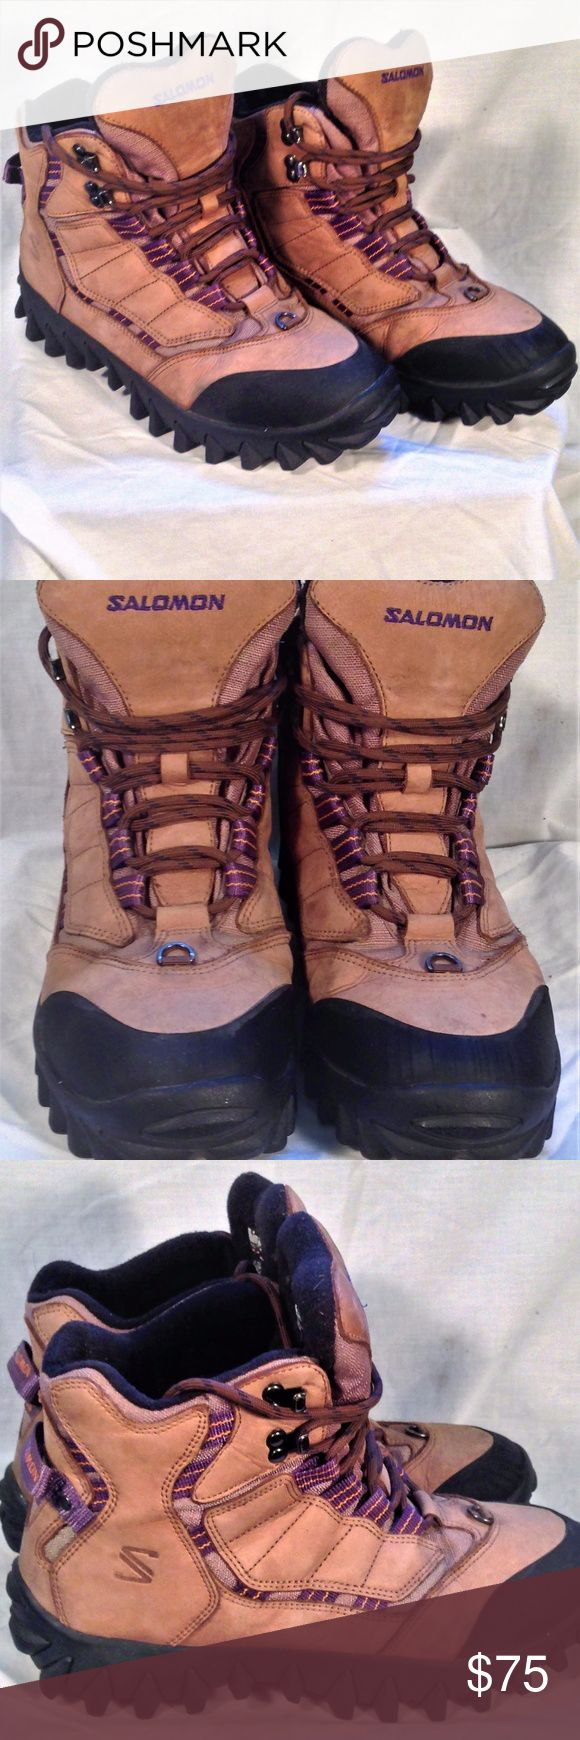 Salomon Size 10.5 Thinsulate Winter Snow Boots Salomon Men's Tan Thinsulate Winter Hiking Snow Boots Size 10.5  Thank You for choosing Kross Threads! Condition: Good Pre-Owned Condition. Small scuff on inside of right boot While we strive for perfection, If any flaws are found please contact us for a solution. Label: Salomon Material: Suede Leather Color: Tan Size: Men's 10.5 Country: China Our mission is to provide unique quality style to your wardrobe Salomon Shoes Boots